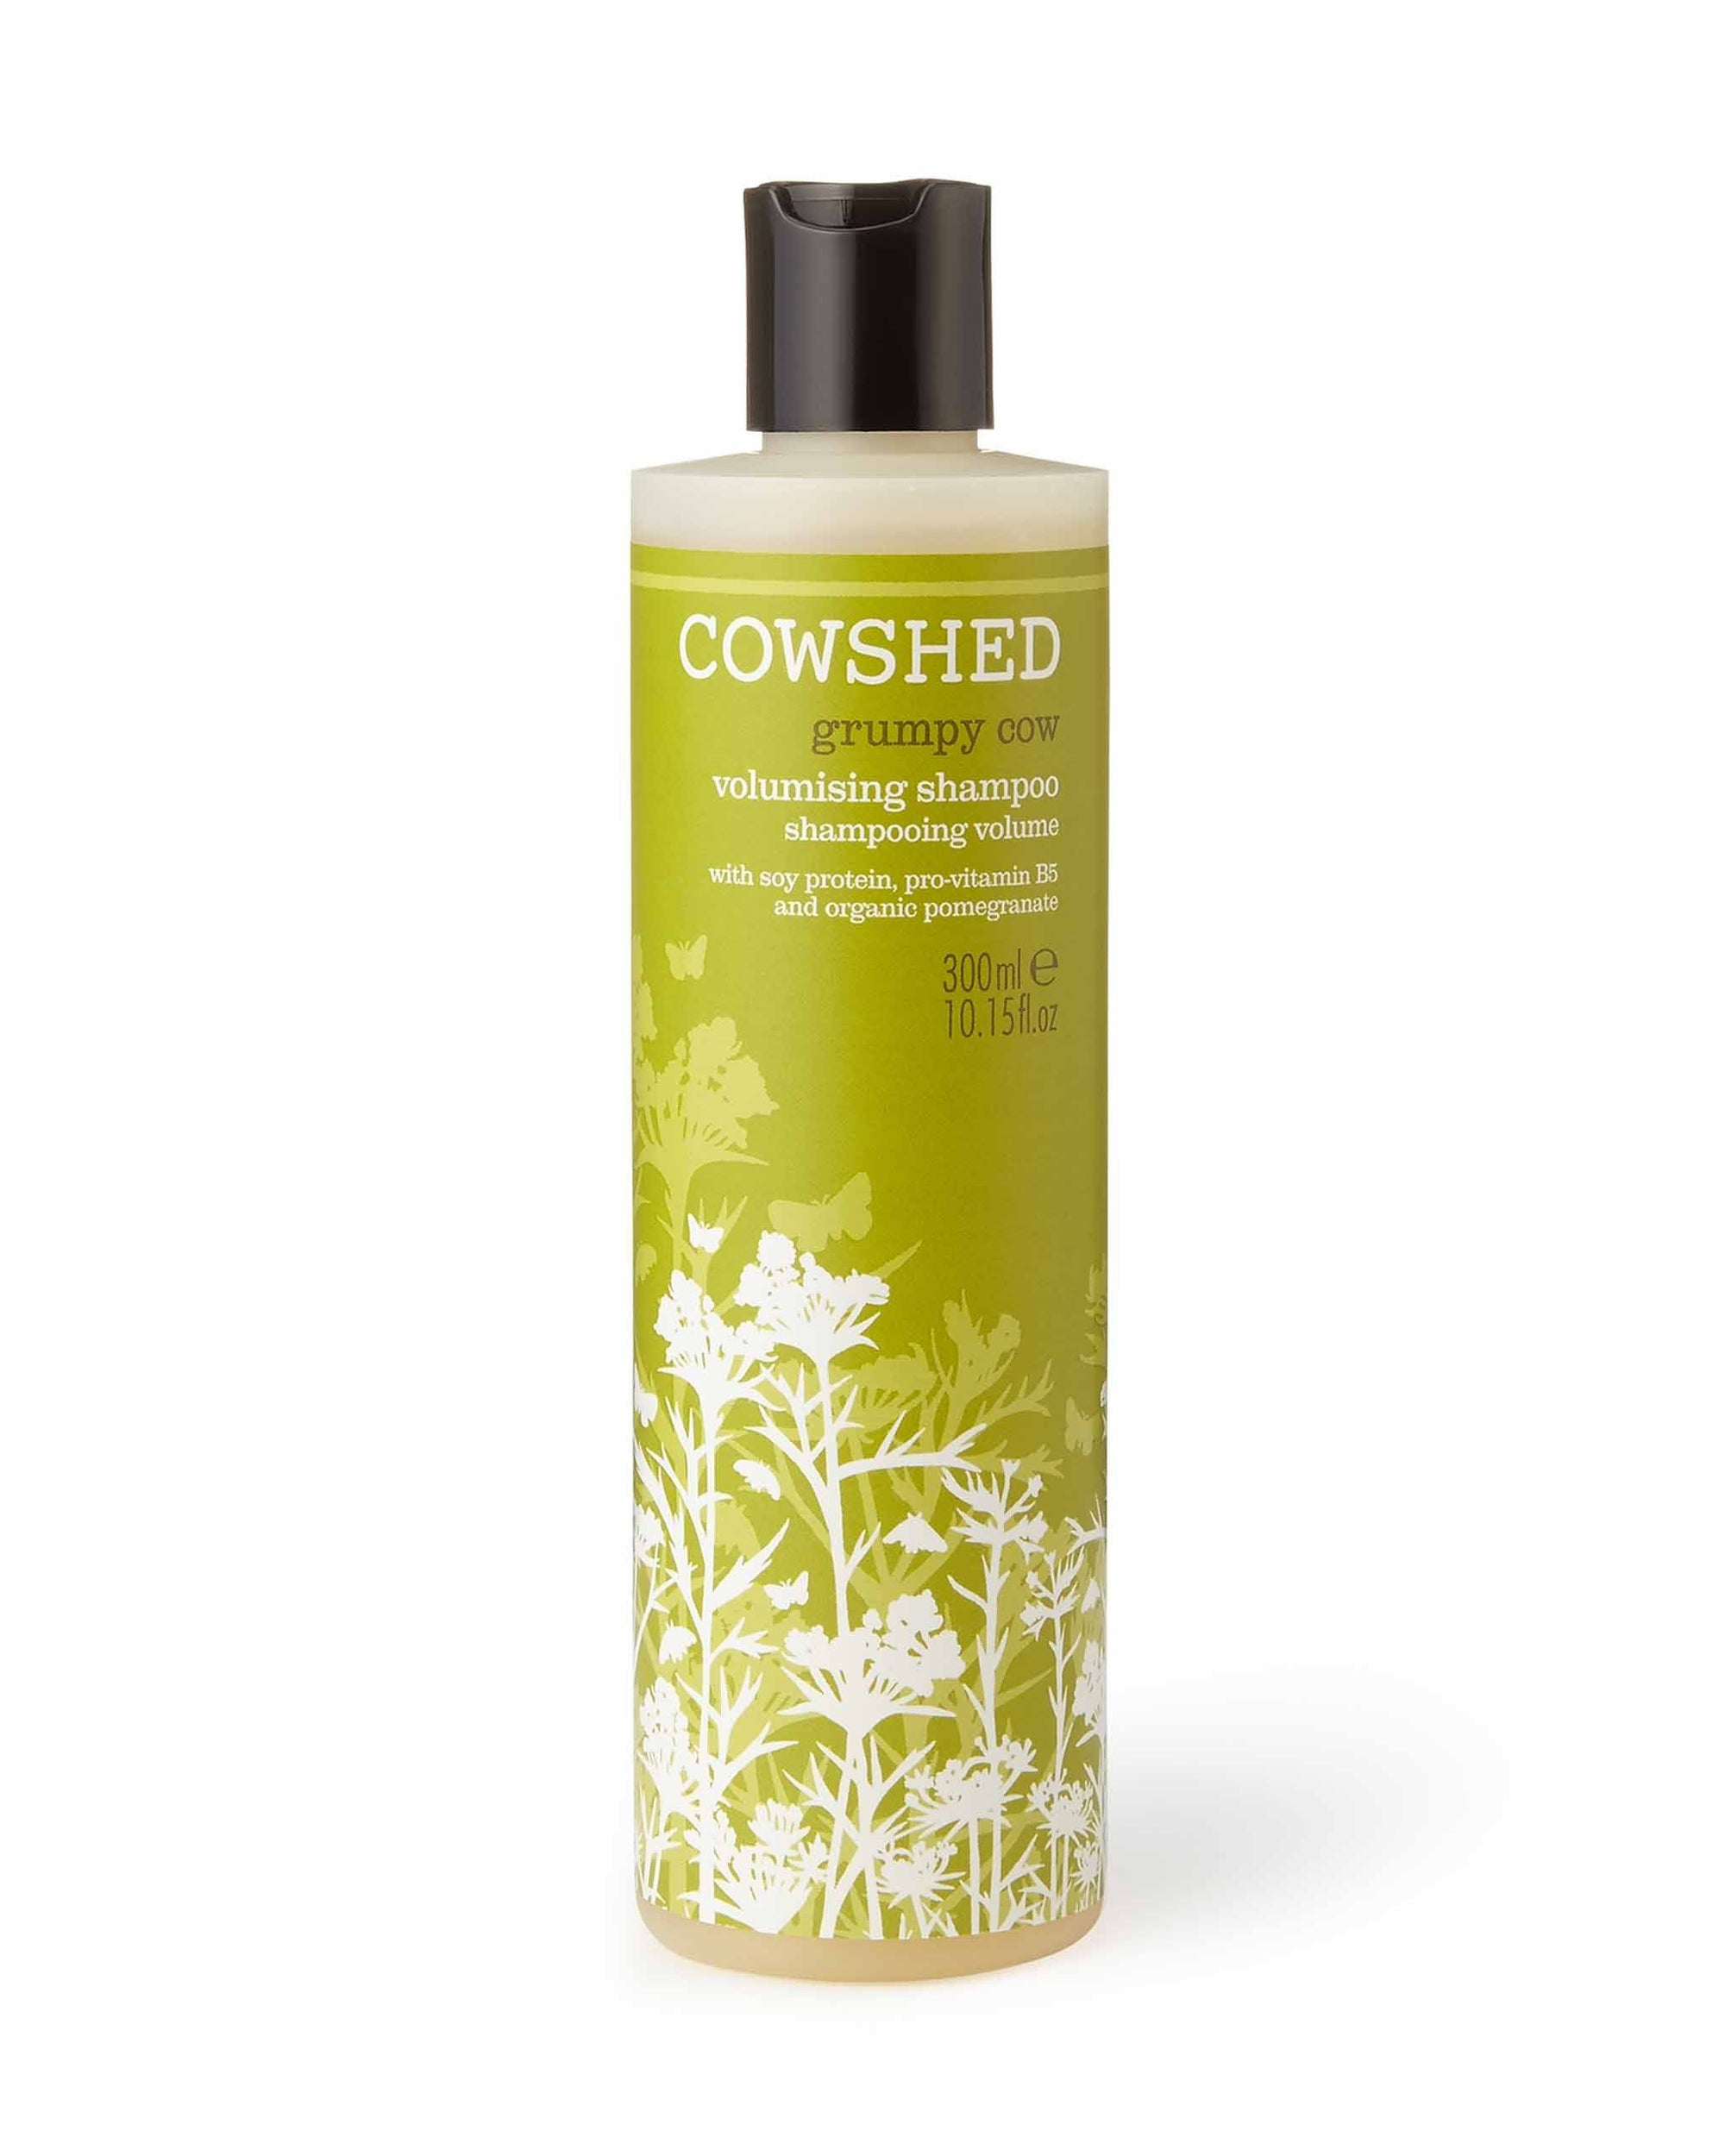 Grumpy Cow Volumising Shampoo (300ml) Cowshed - BouChic